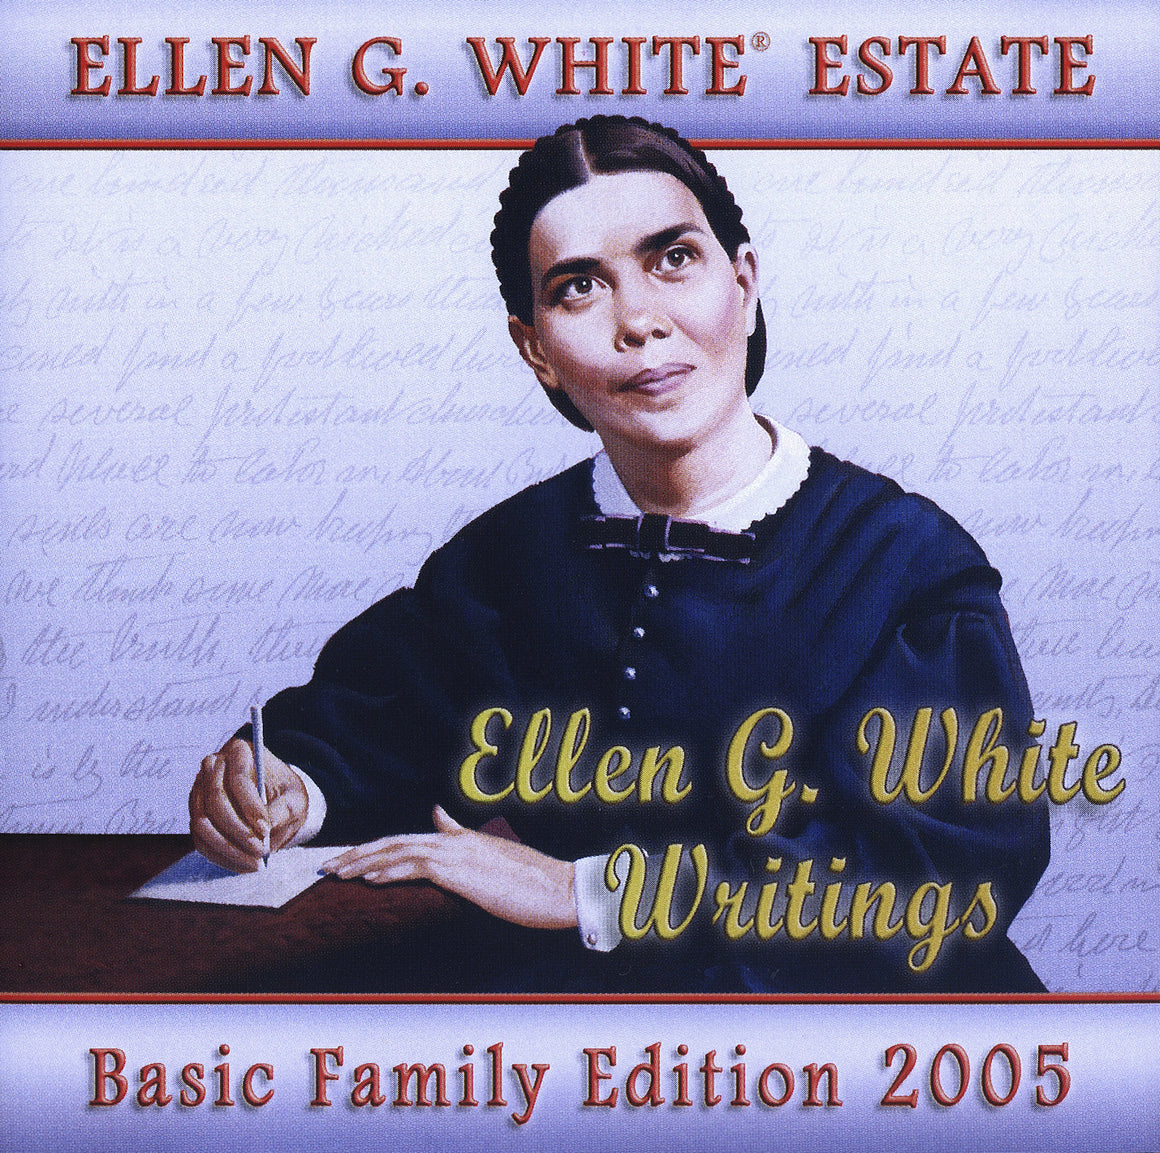 Ellen G. White Writings Basic Family Edition CD-ROM